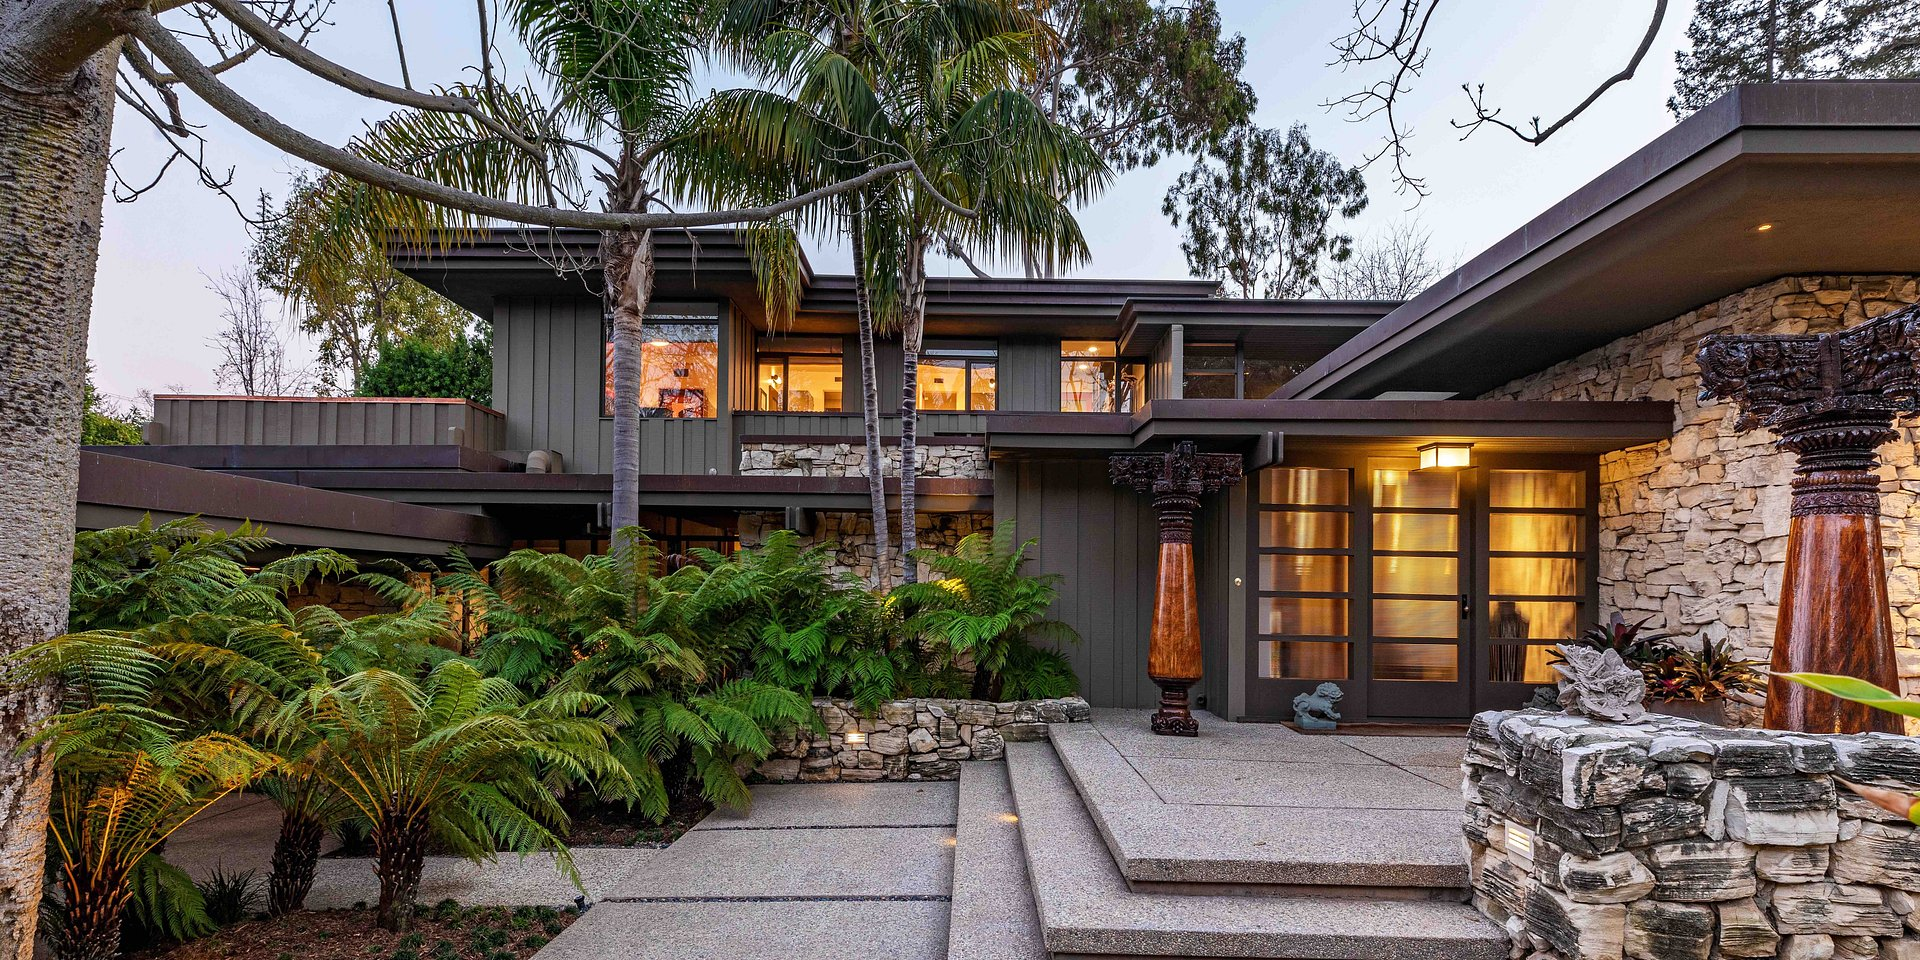 Coldwell Banker Realty Lists a Los Angeles Property for $10 Million